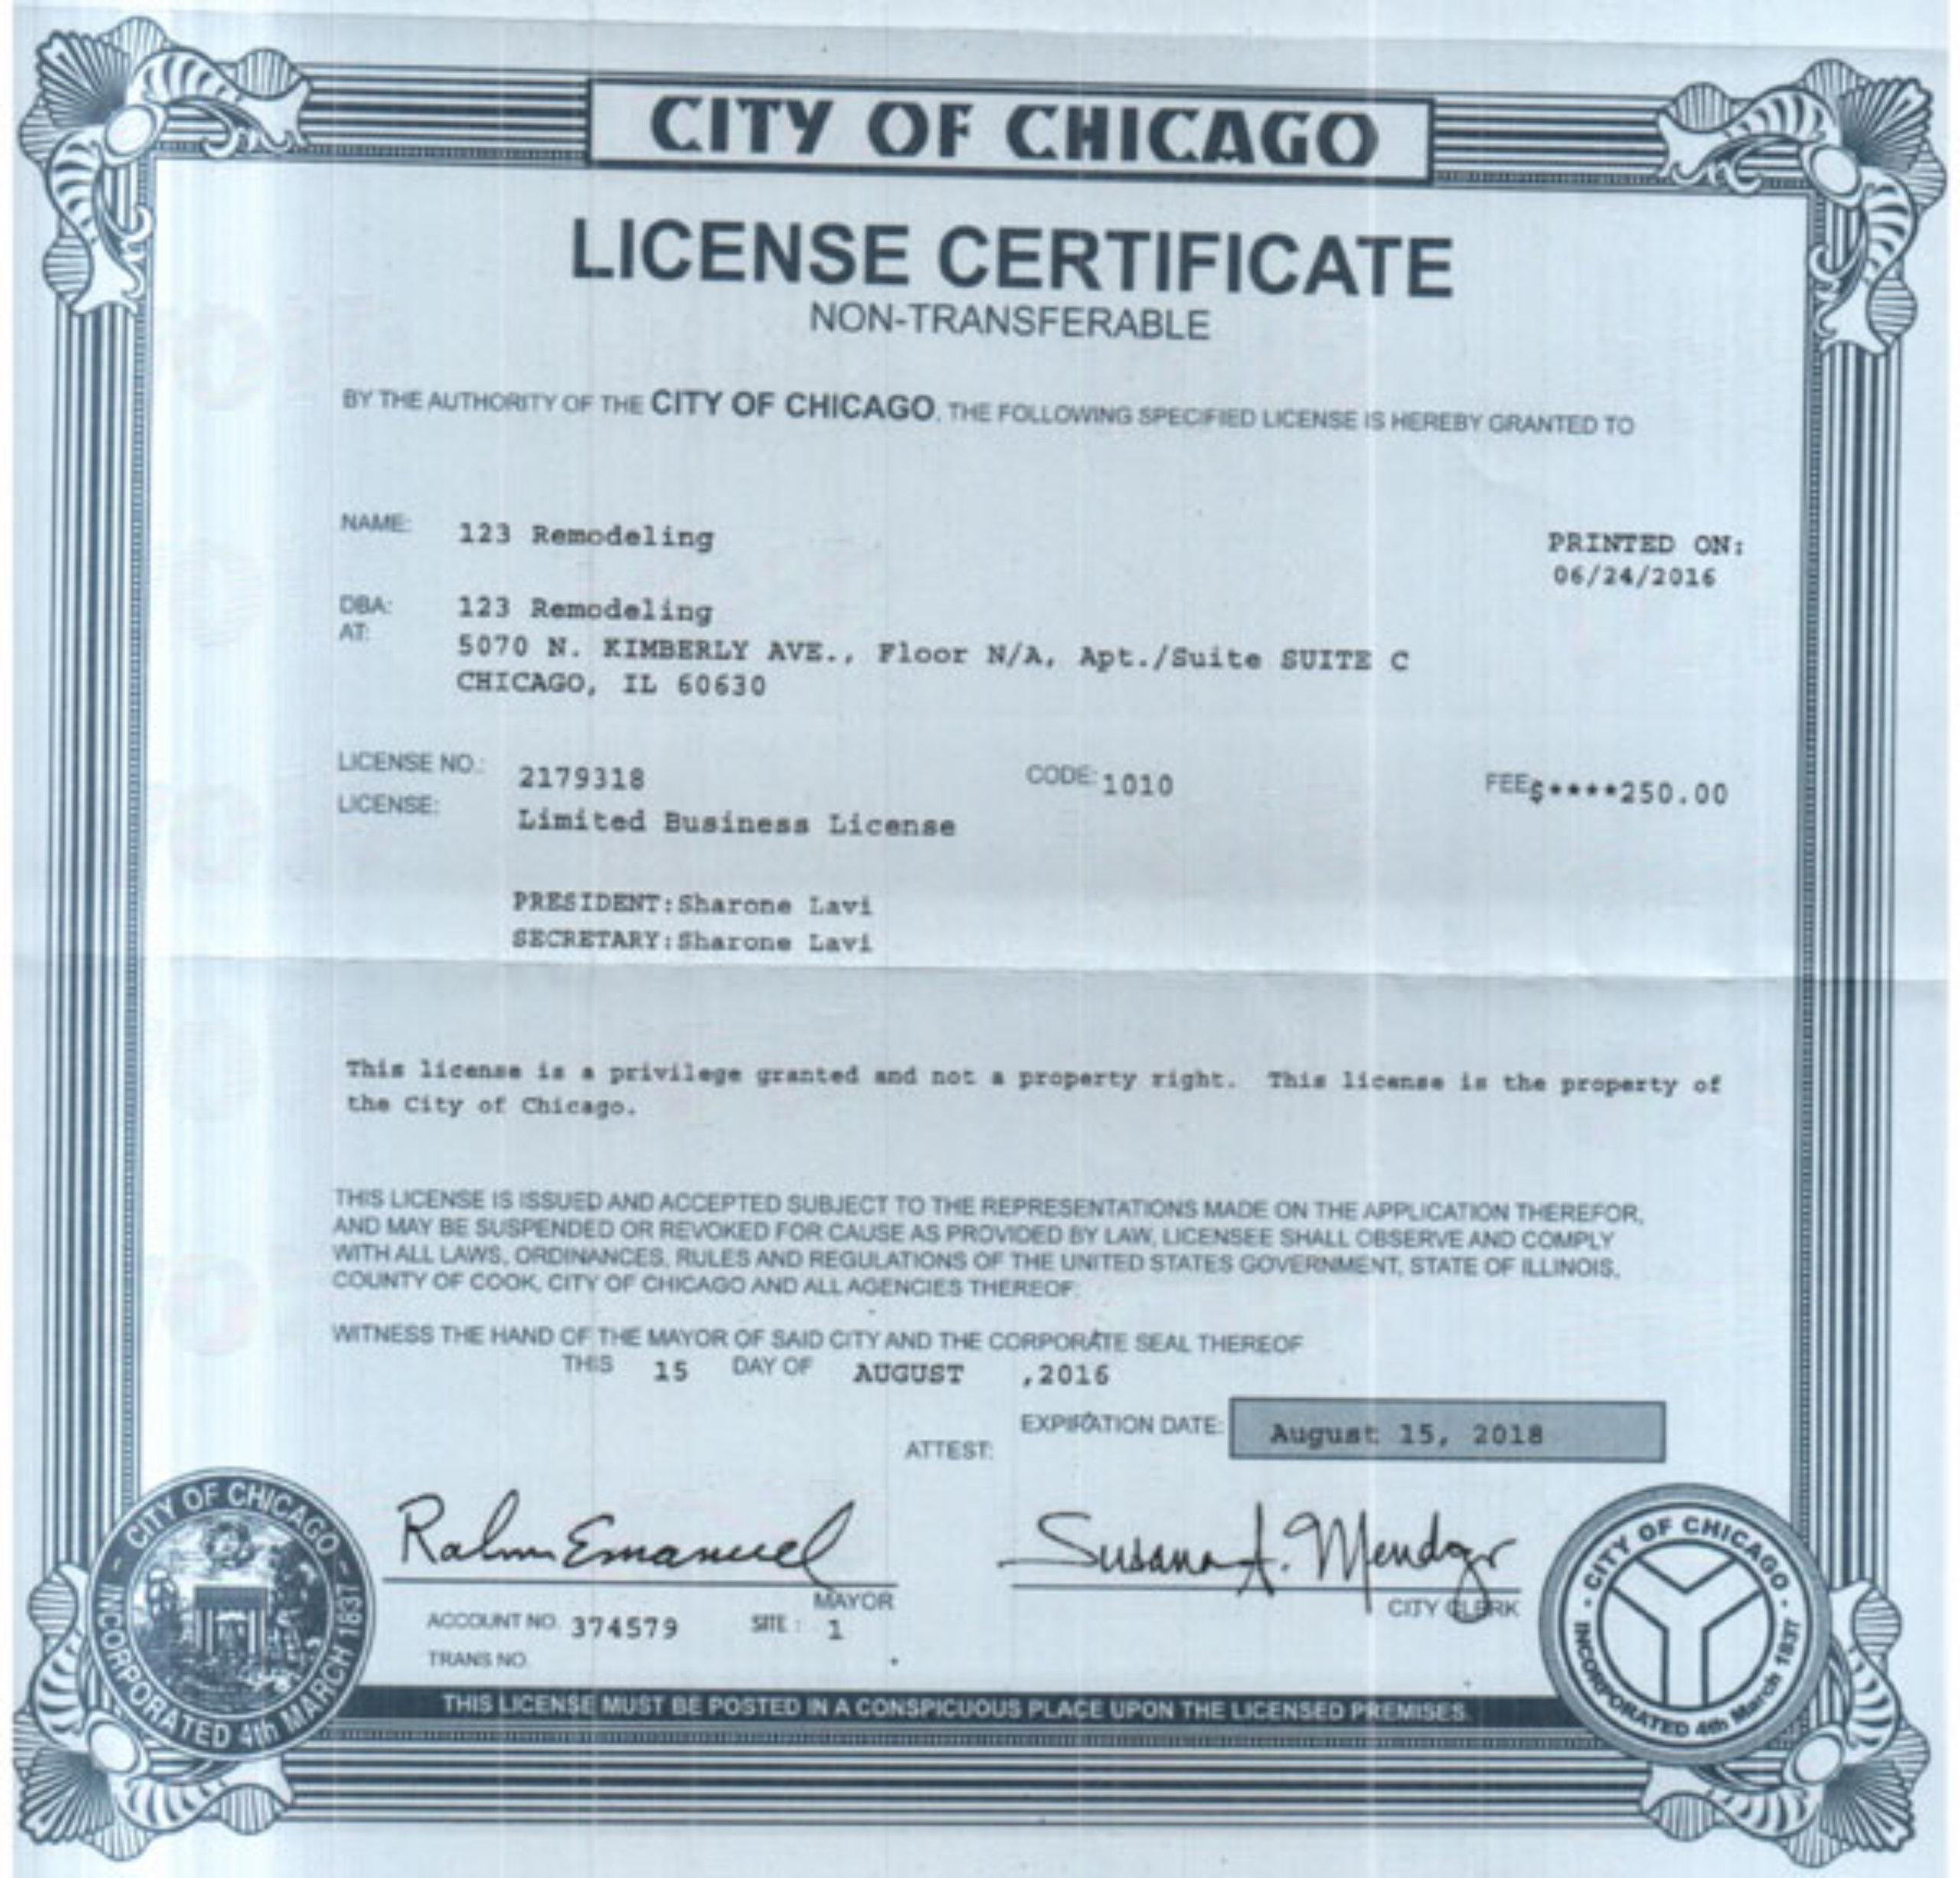 123 Remodeling City of Chicago Business License